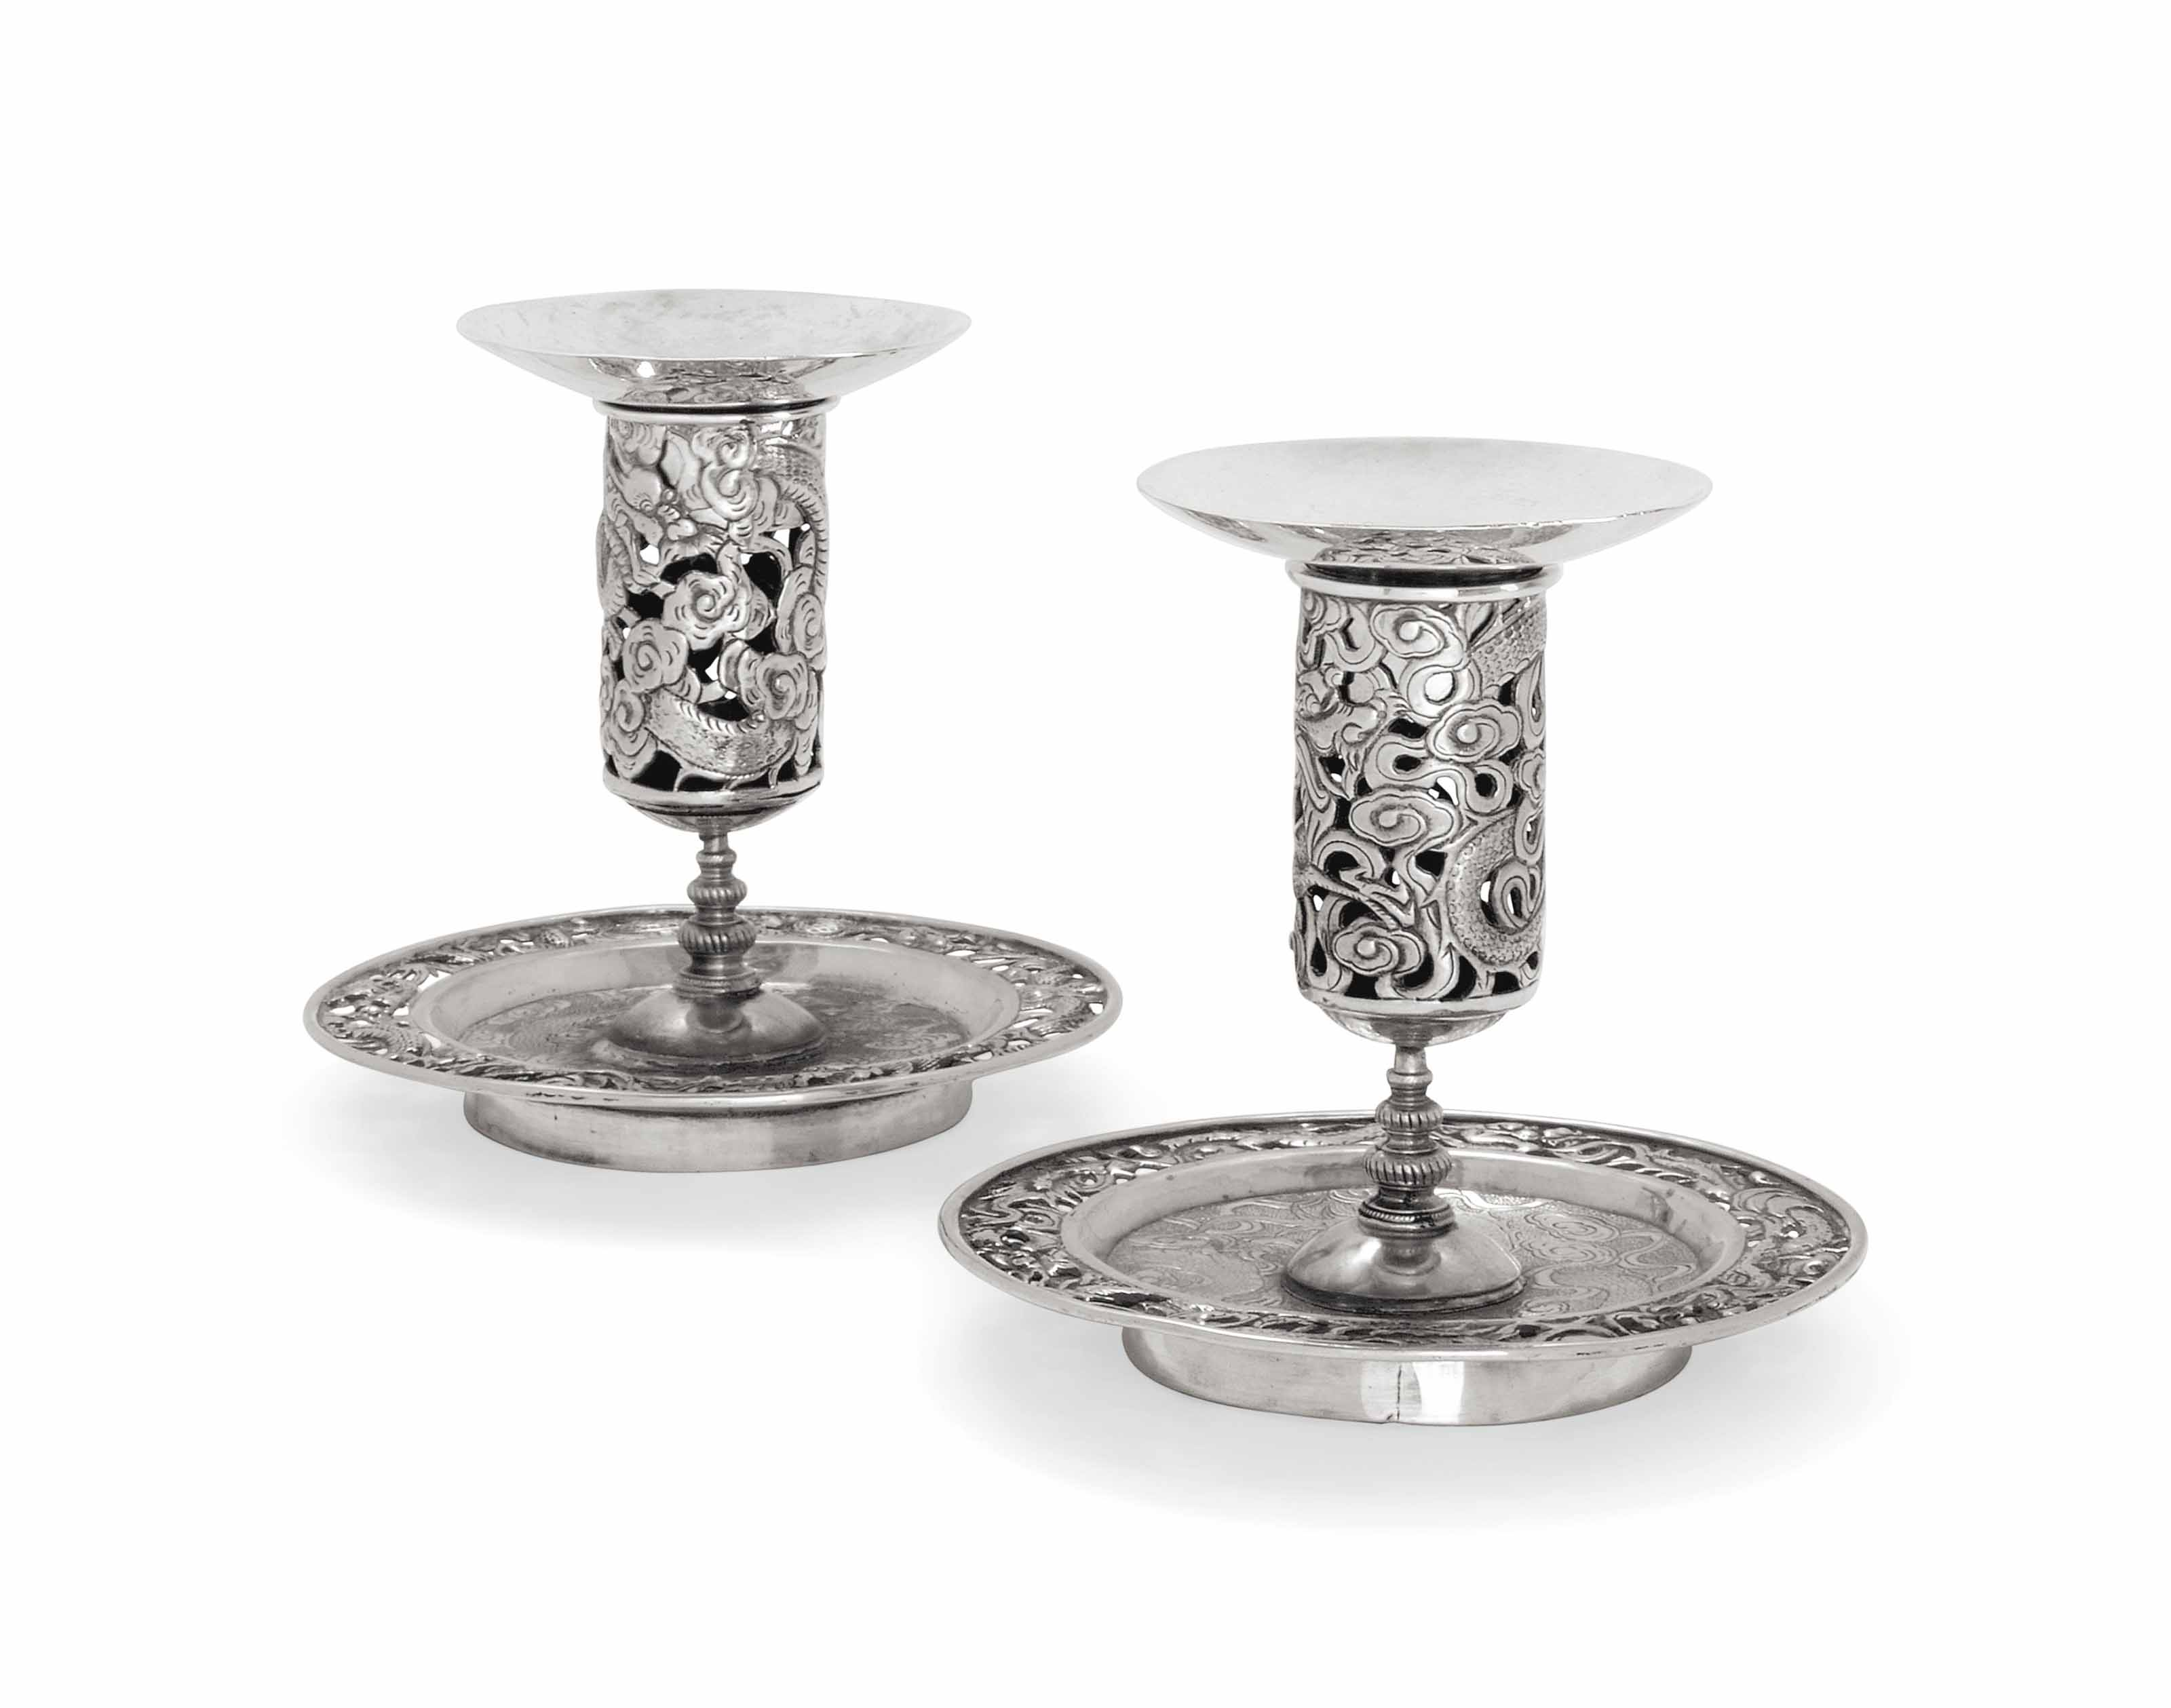 A MATCHED PAIR OF CHINESE SILVER DWARF CANDLESTICKS